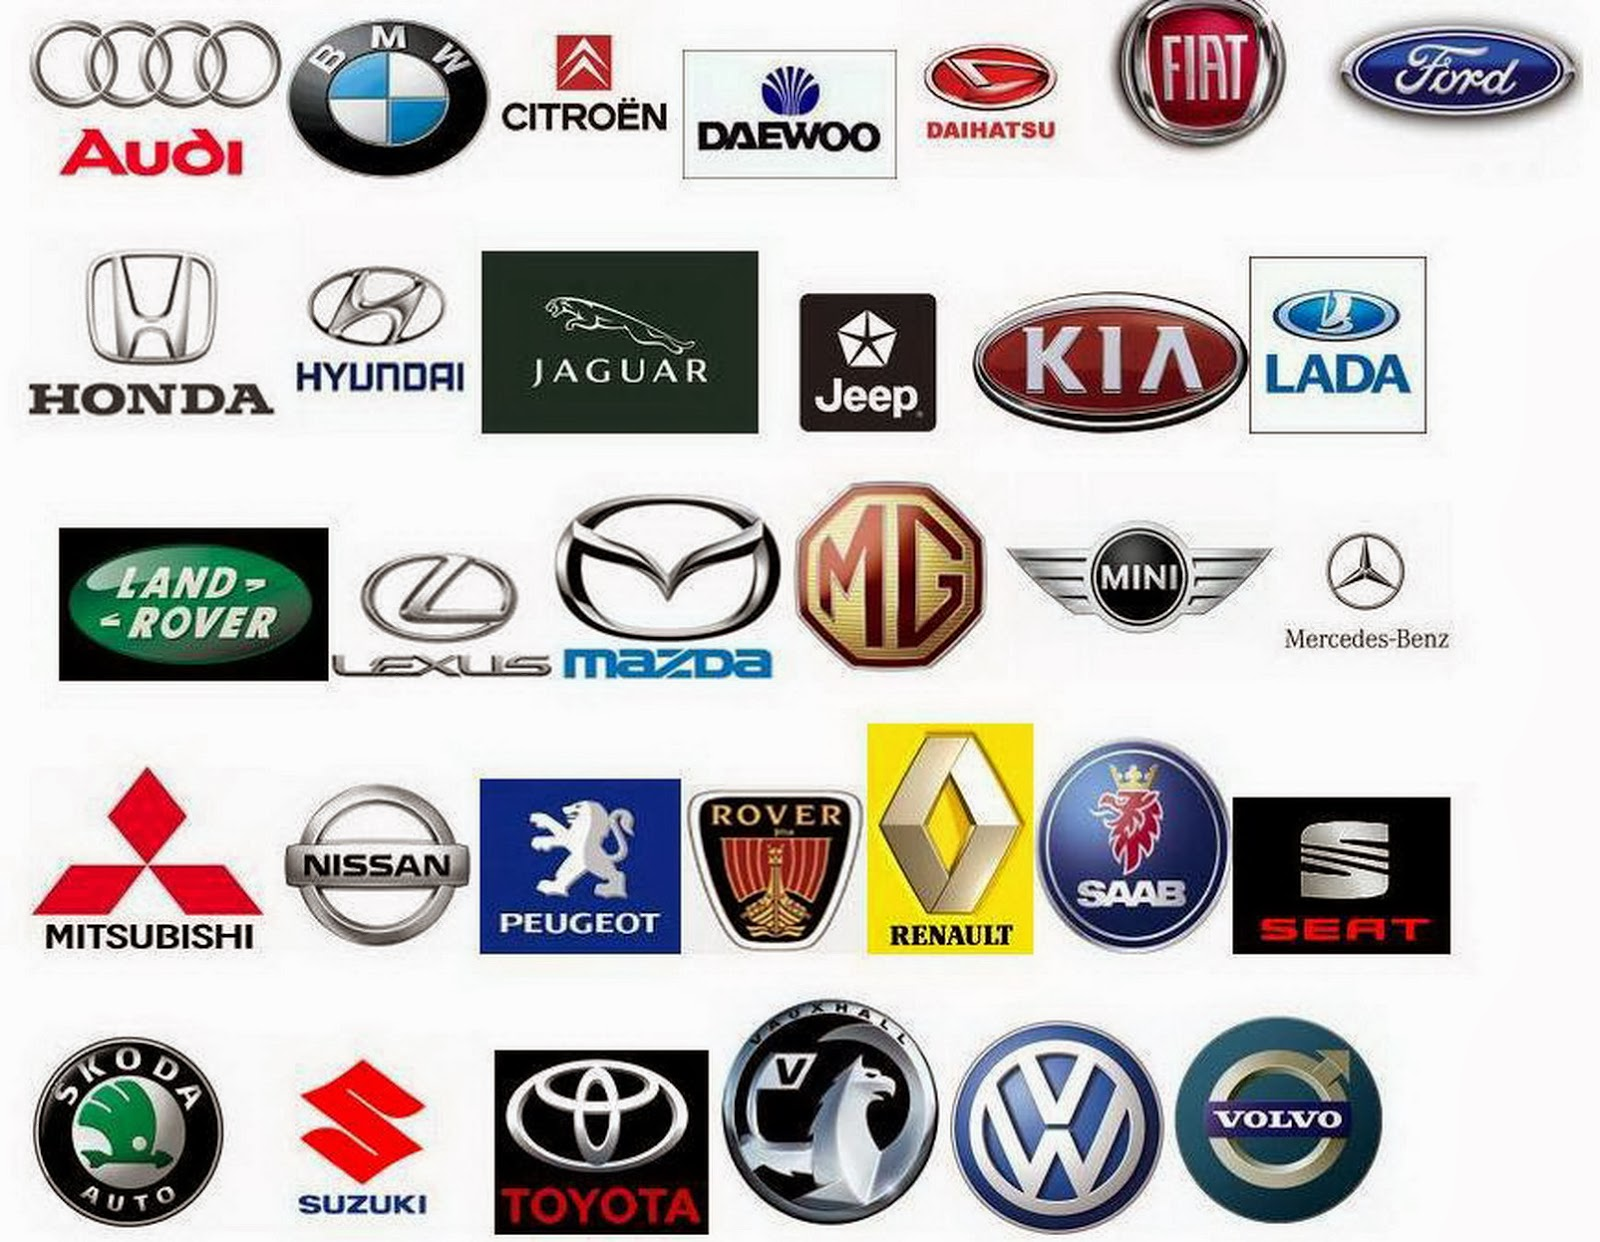 Car Brands Logos And Names >> Car Logos And Brands | Cars Show Logos